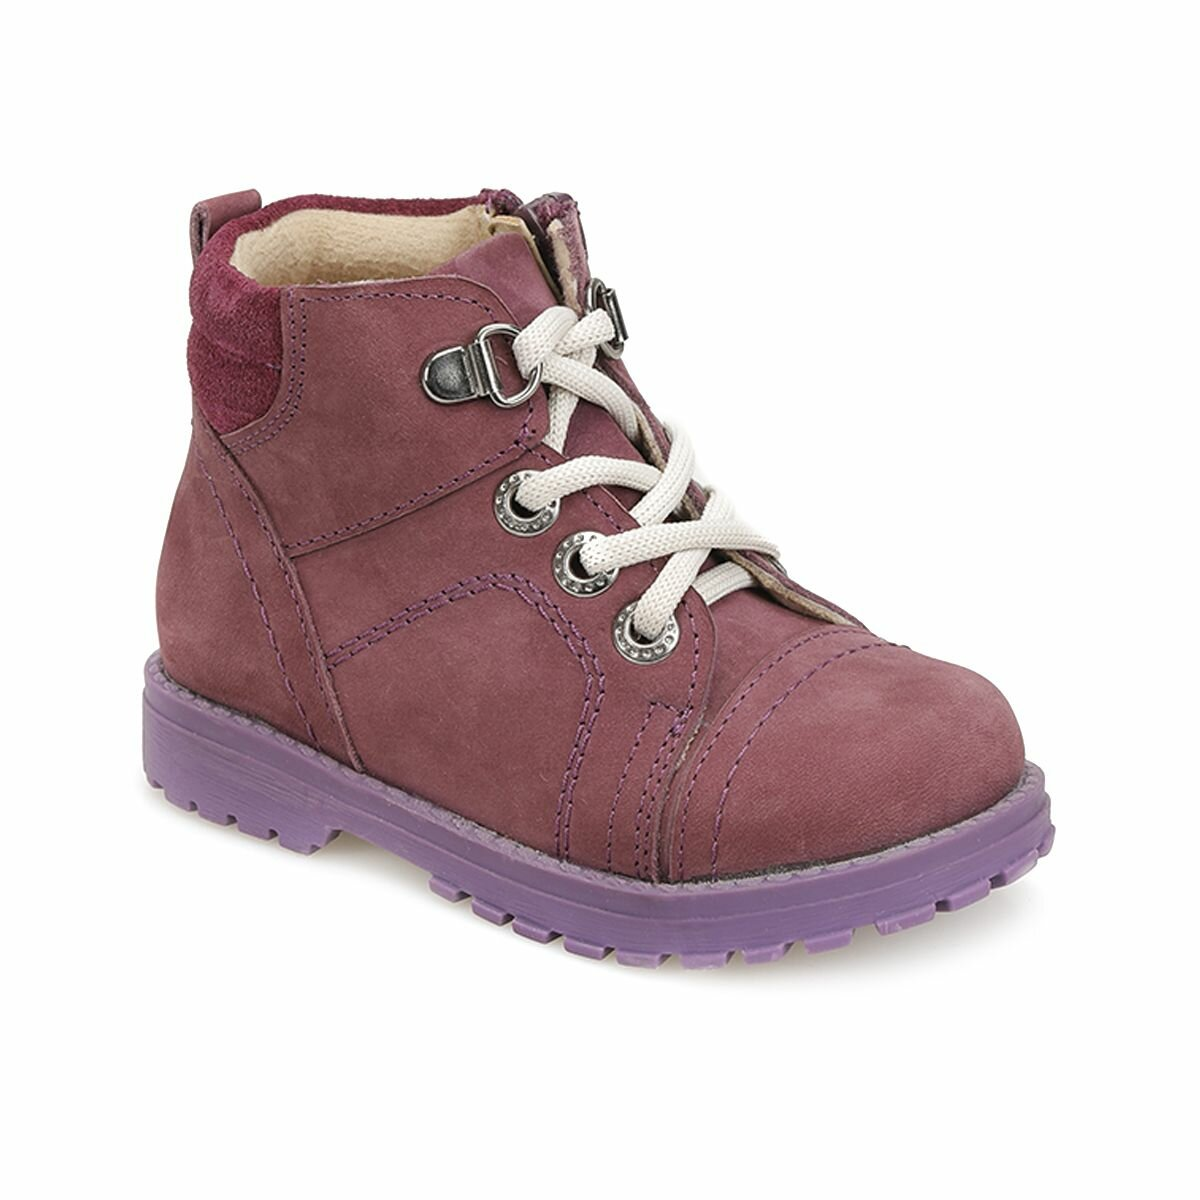 FLO 82.510529.B Purple Female Child Boots Polaris